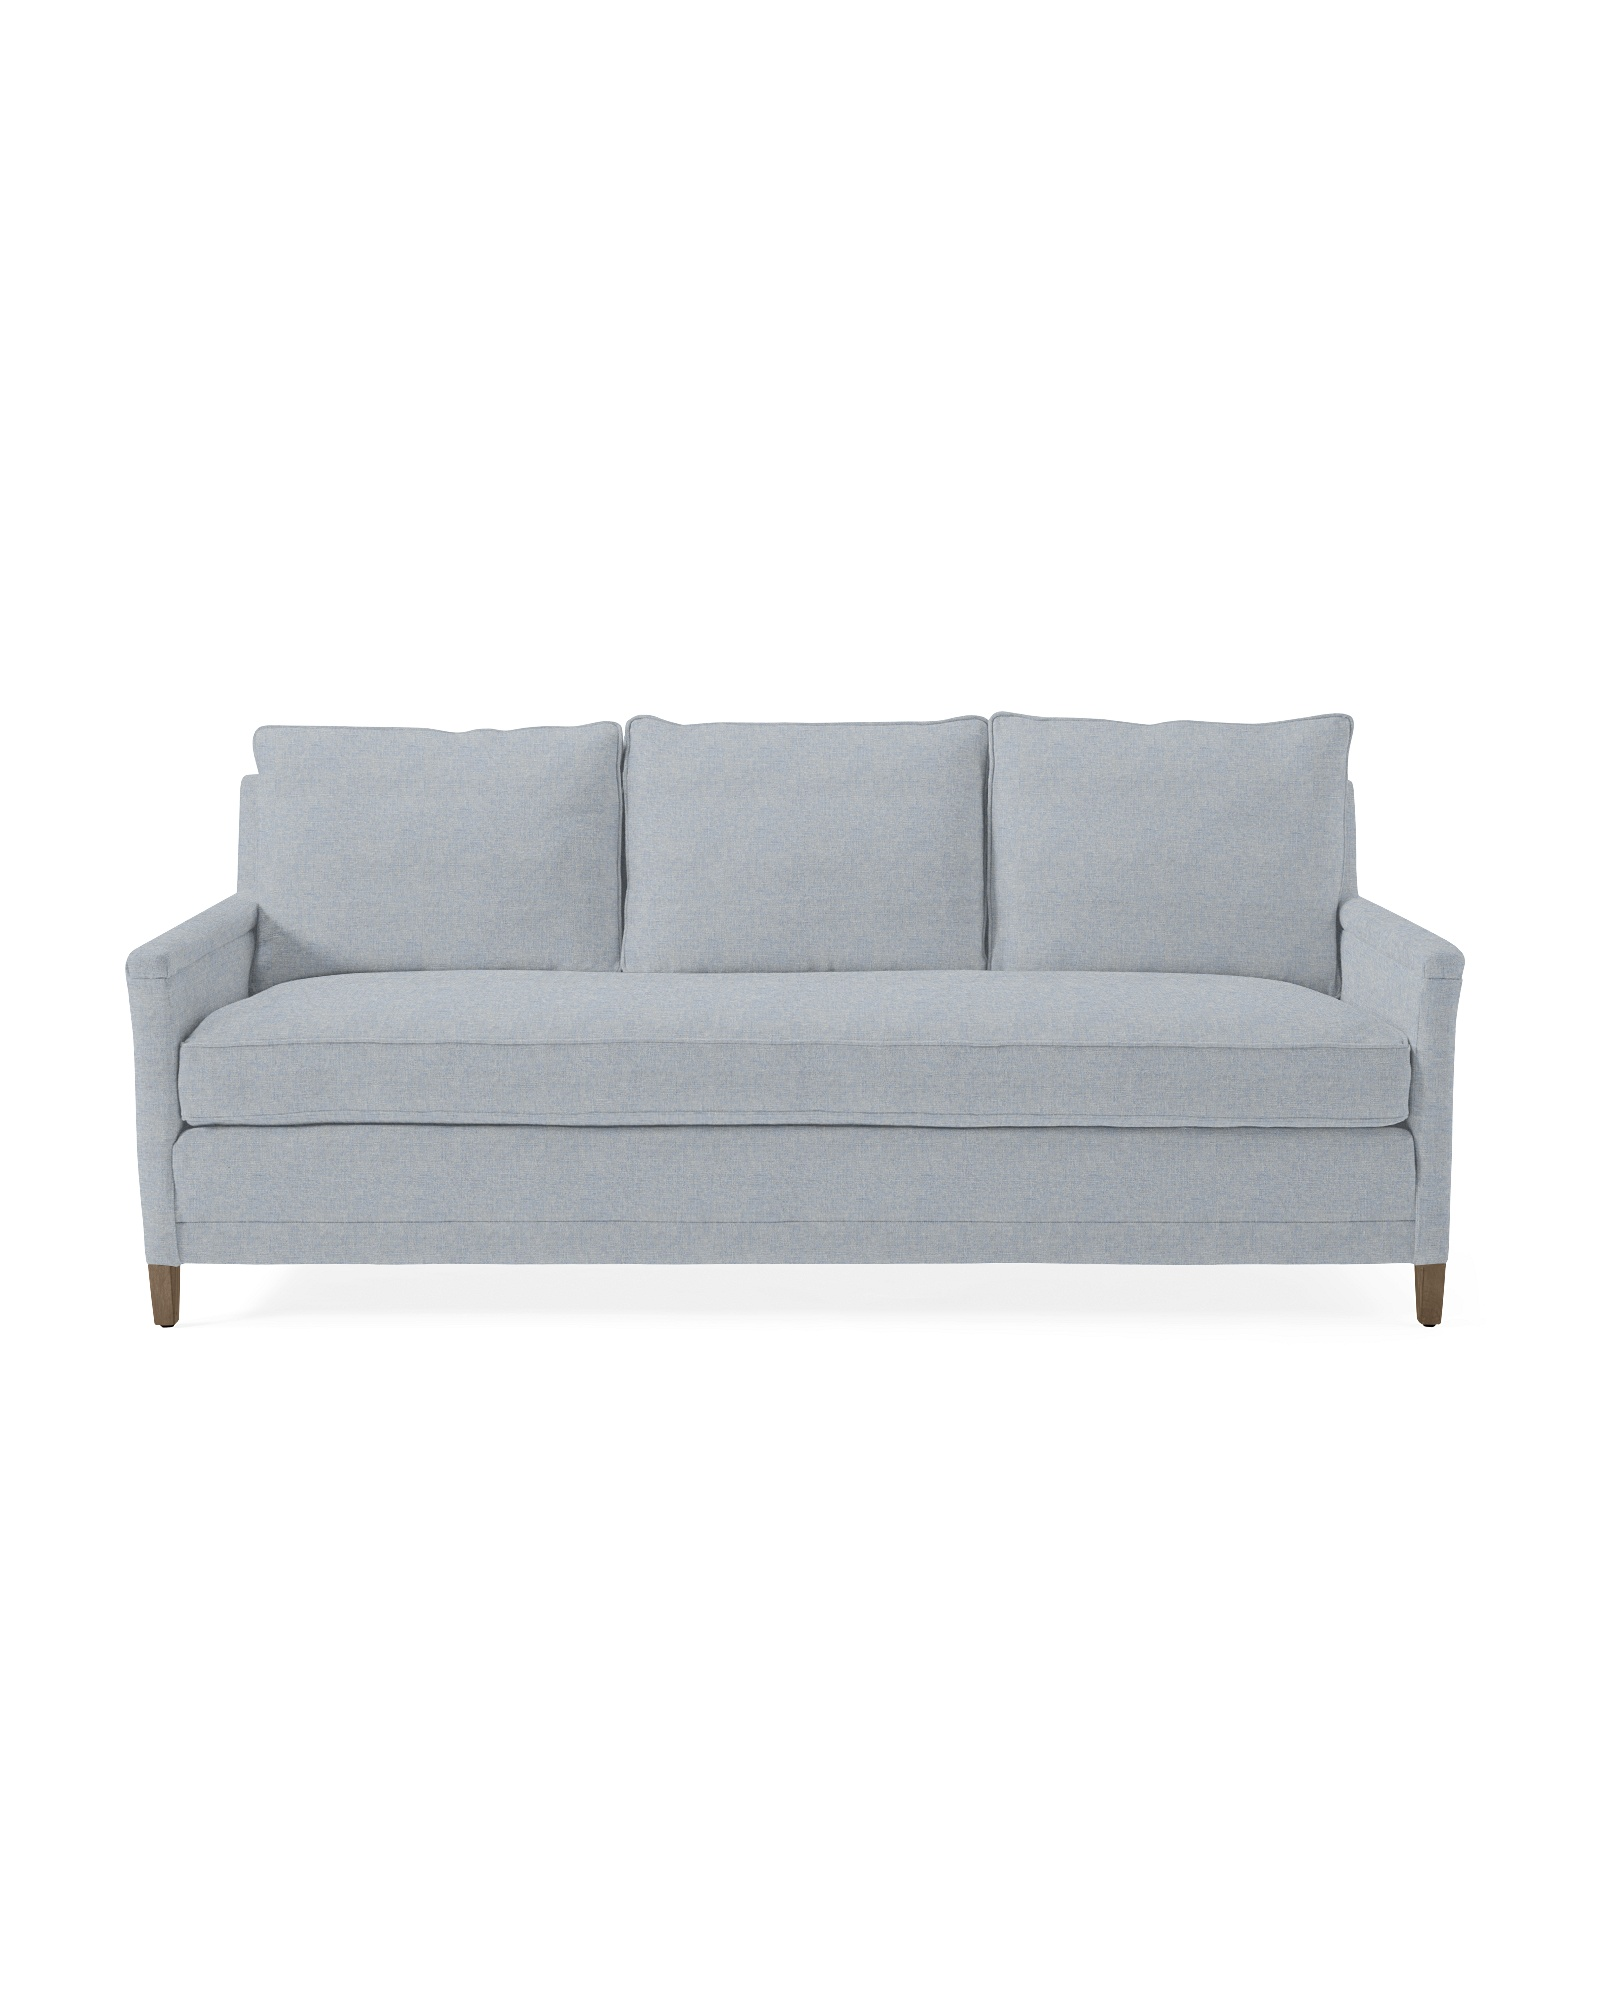 Spruce Street Sofa with Bench Seat - Sky Blue Saltwashed Belgian Linen,